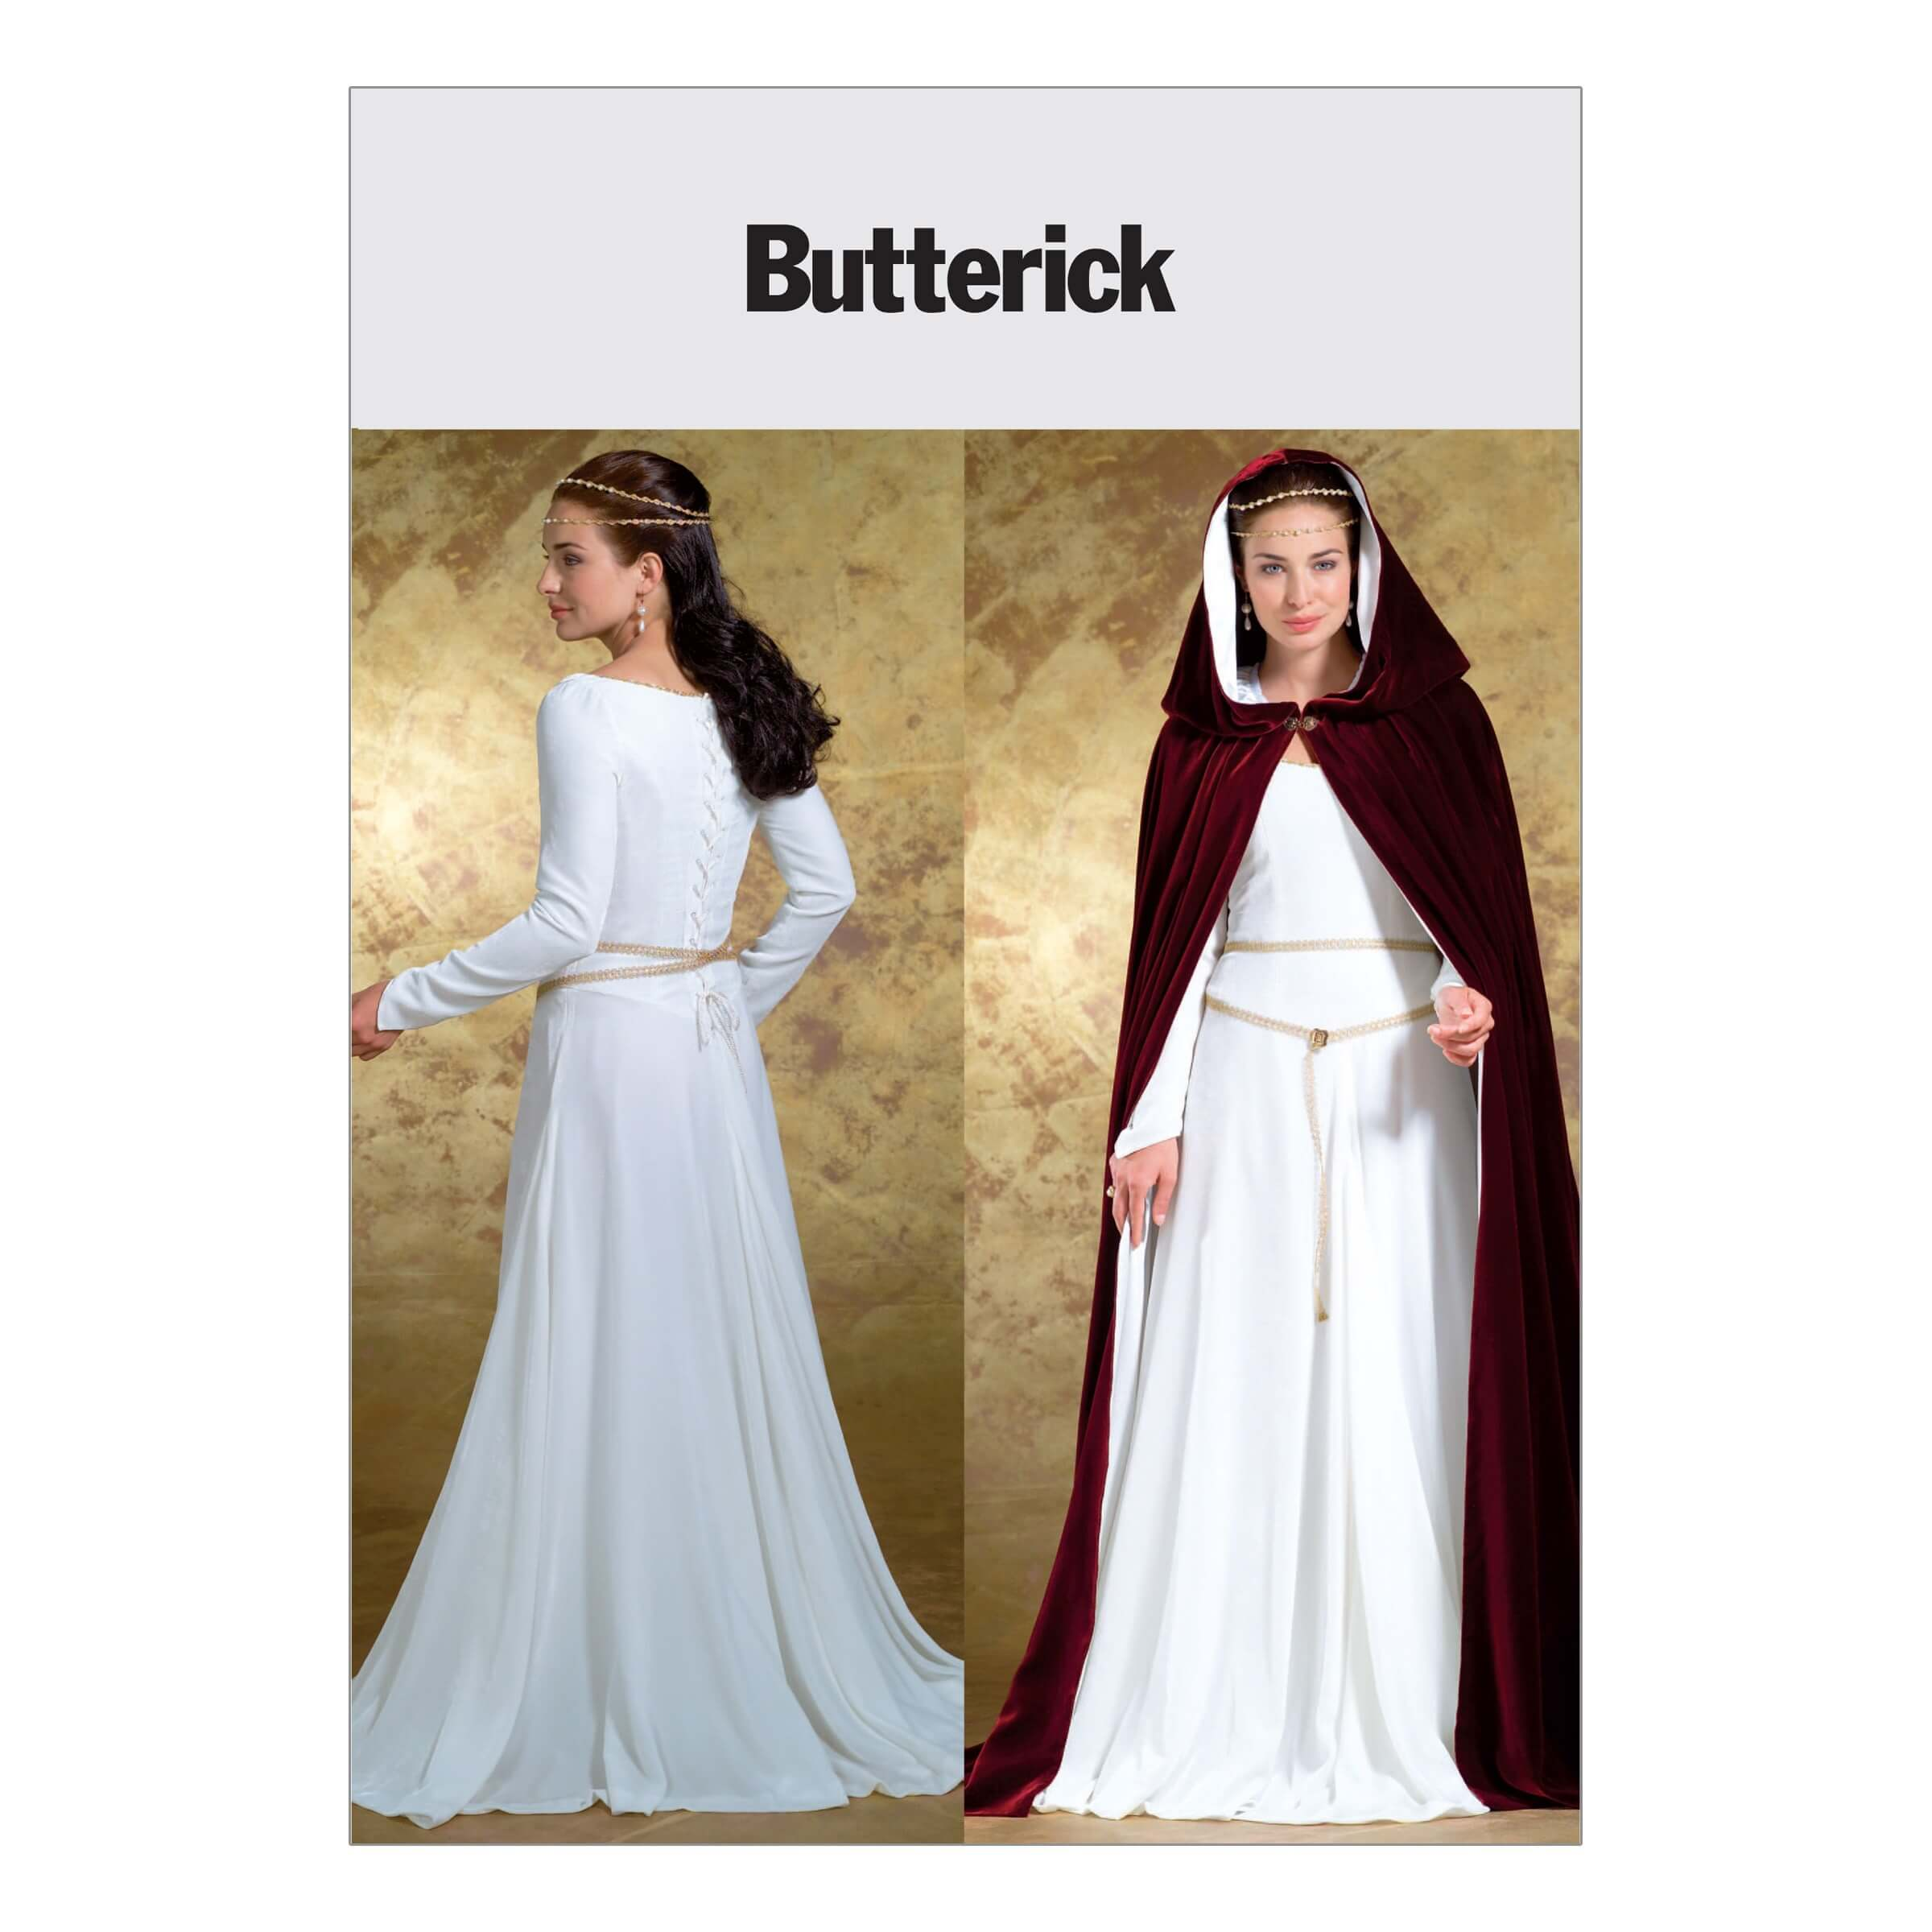 Butterick Sewing Pattern 4377 Misses' Fantasy Maiden Costume Dress Cape